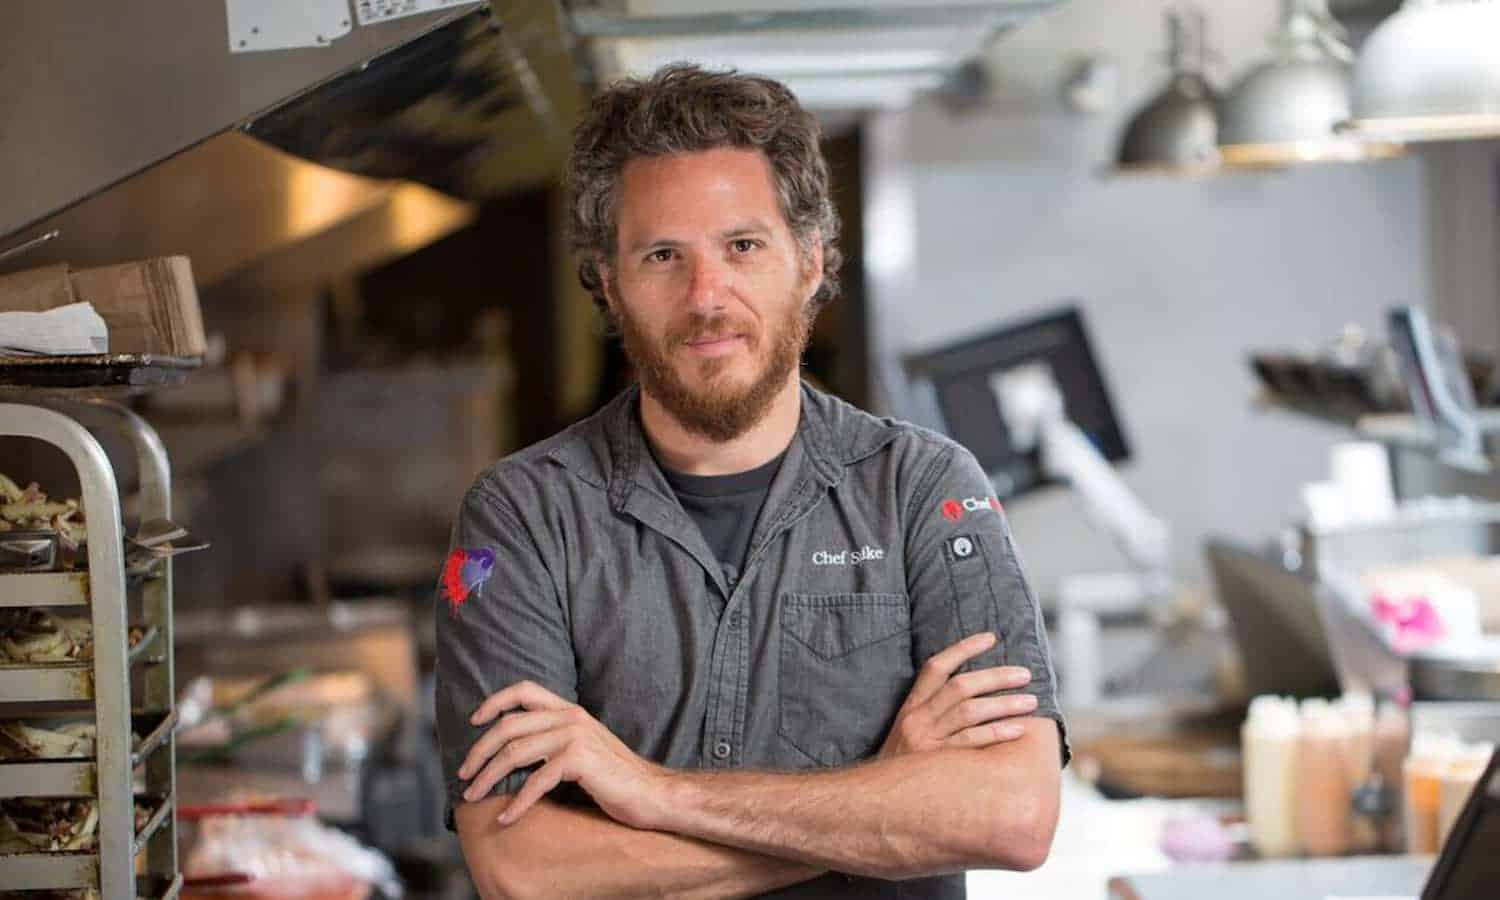 On Food Talk, Spike Mendelsohn encourages chefs to reach beyond their kitchen walls, improving the communities they cook for by improving food policy.